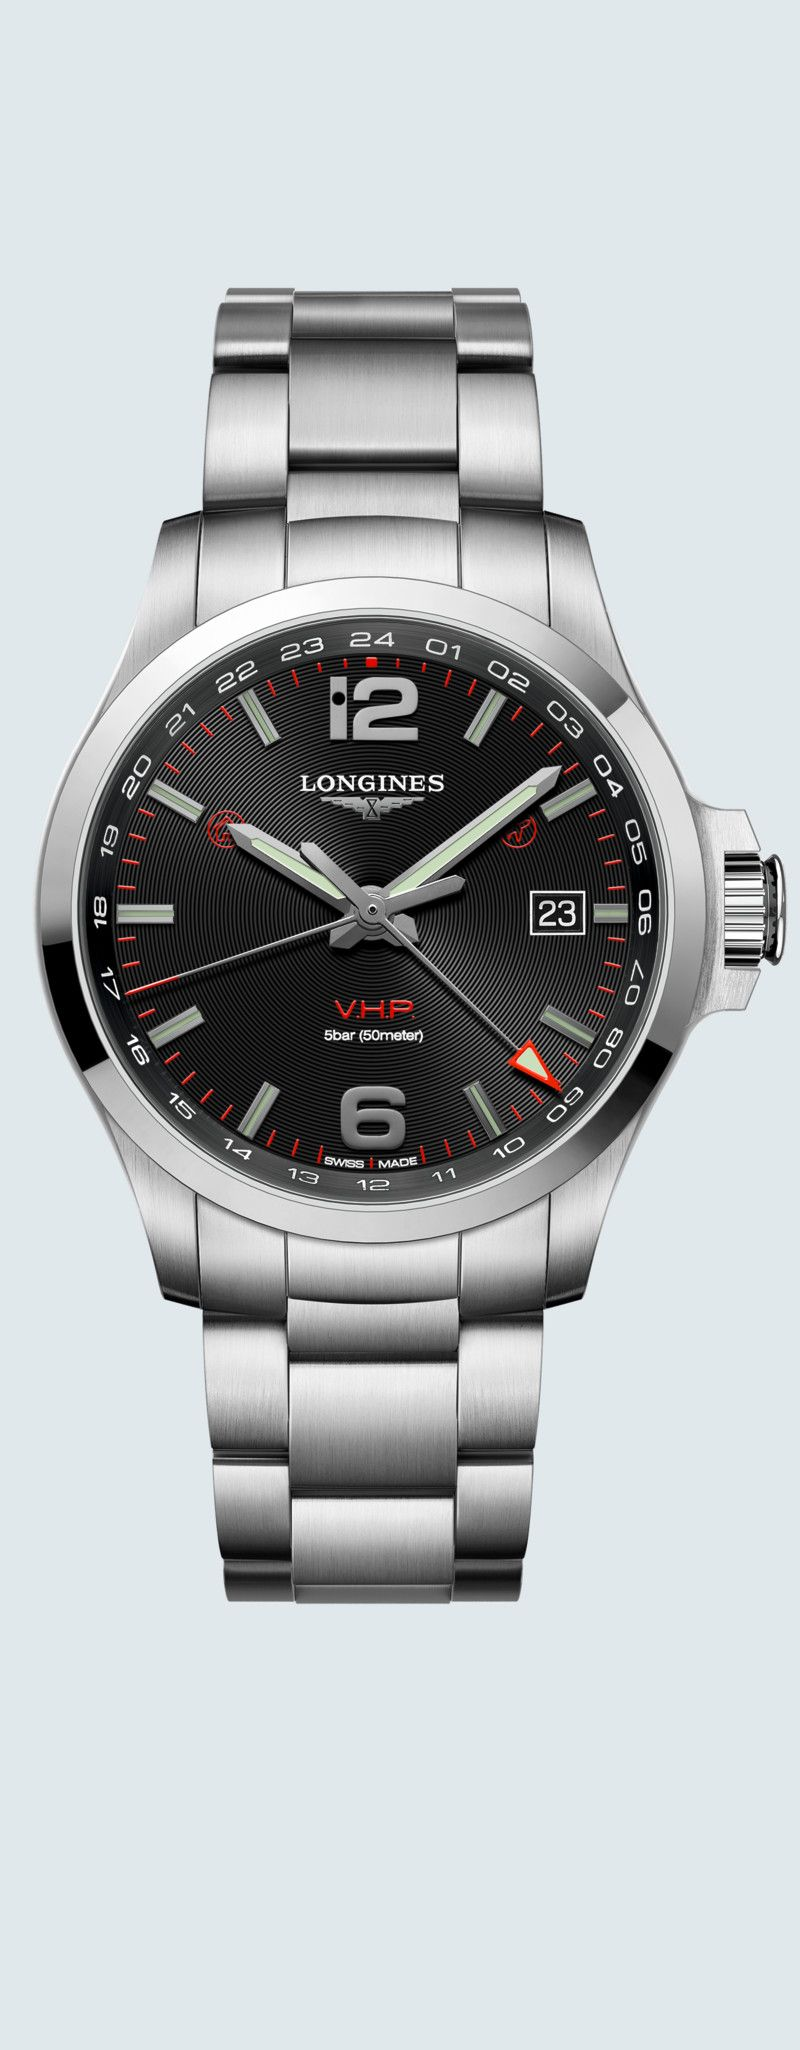 43.00 mm Stainless steel case with Black carved dial and Stainless steel strap - case zoom view